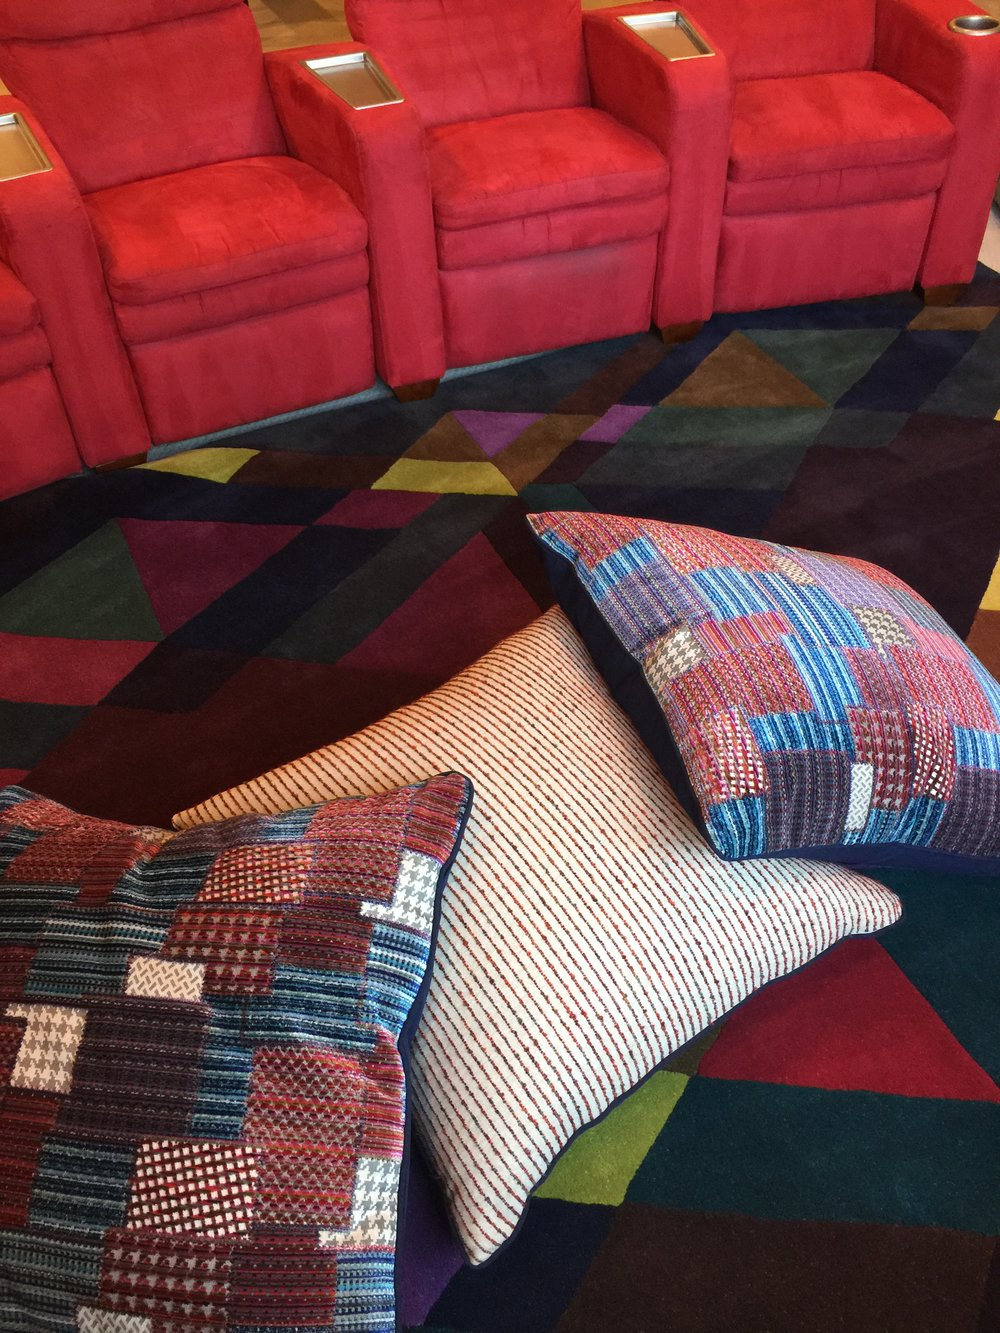 Perfect Media room with floor pillows and theater seating Southern Living Showcase Home